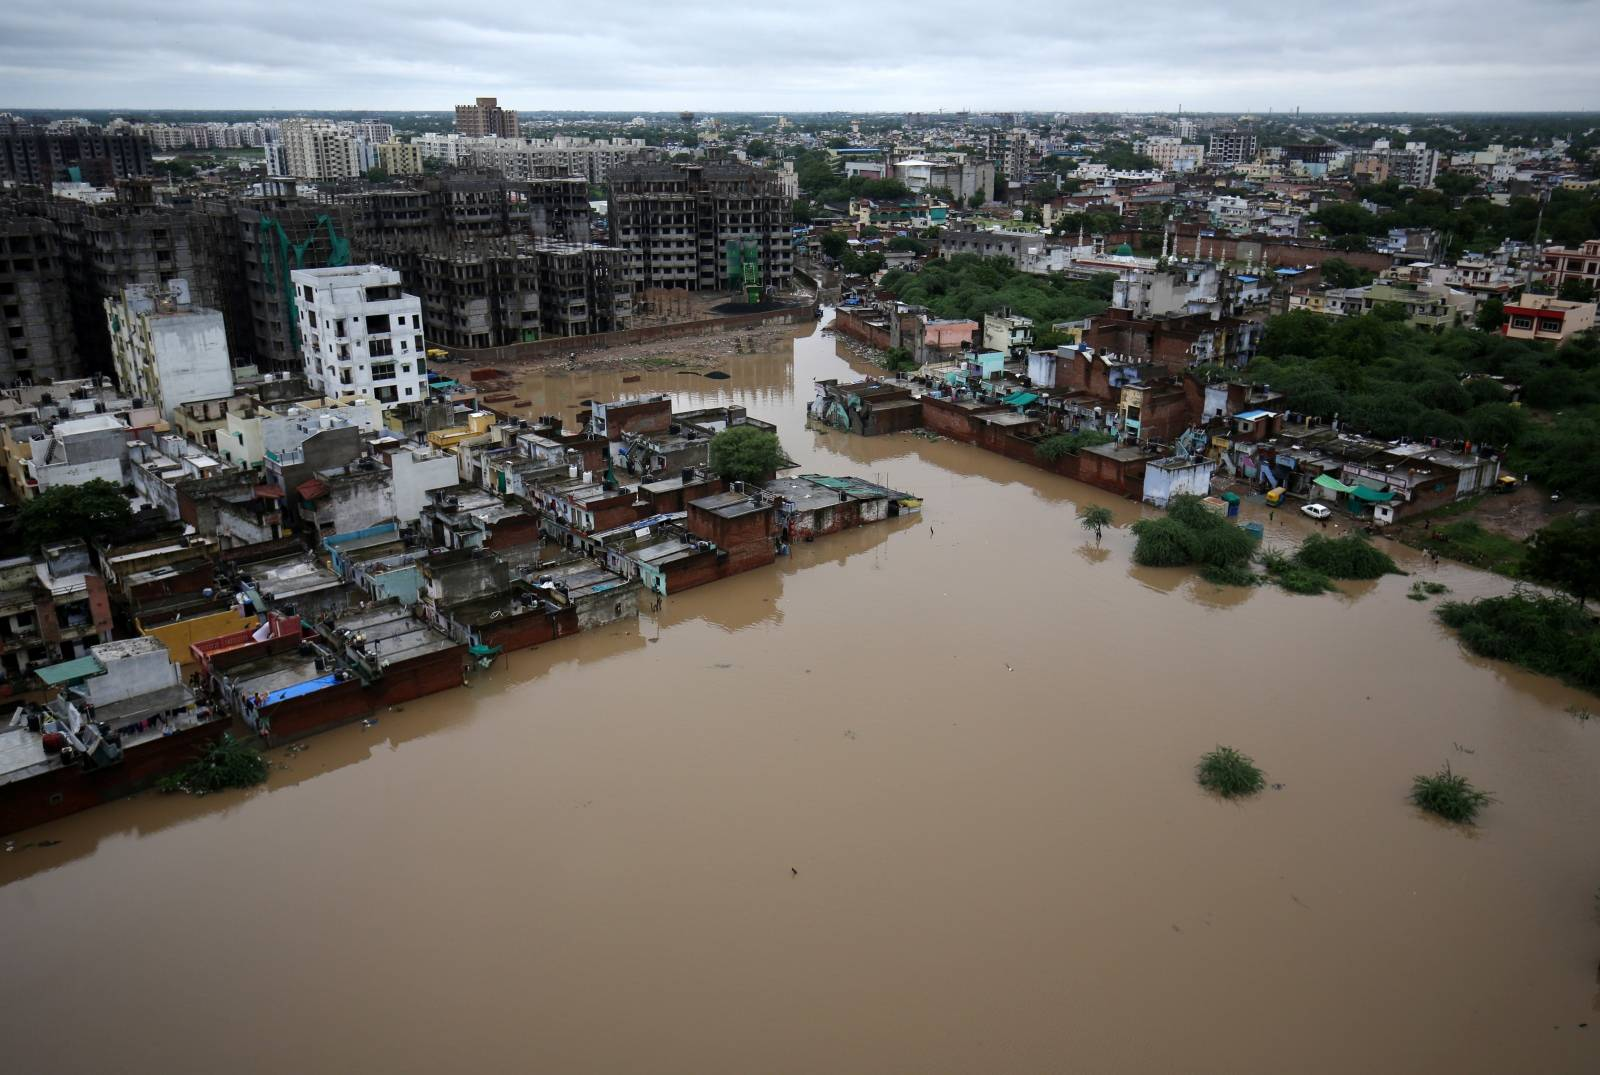 An aerial view shows a flooded residential area after heavy rains in Ahmedabad